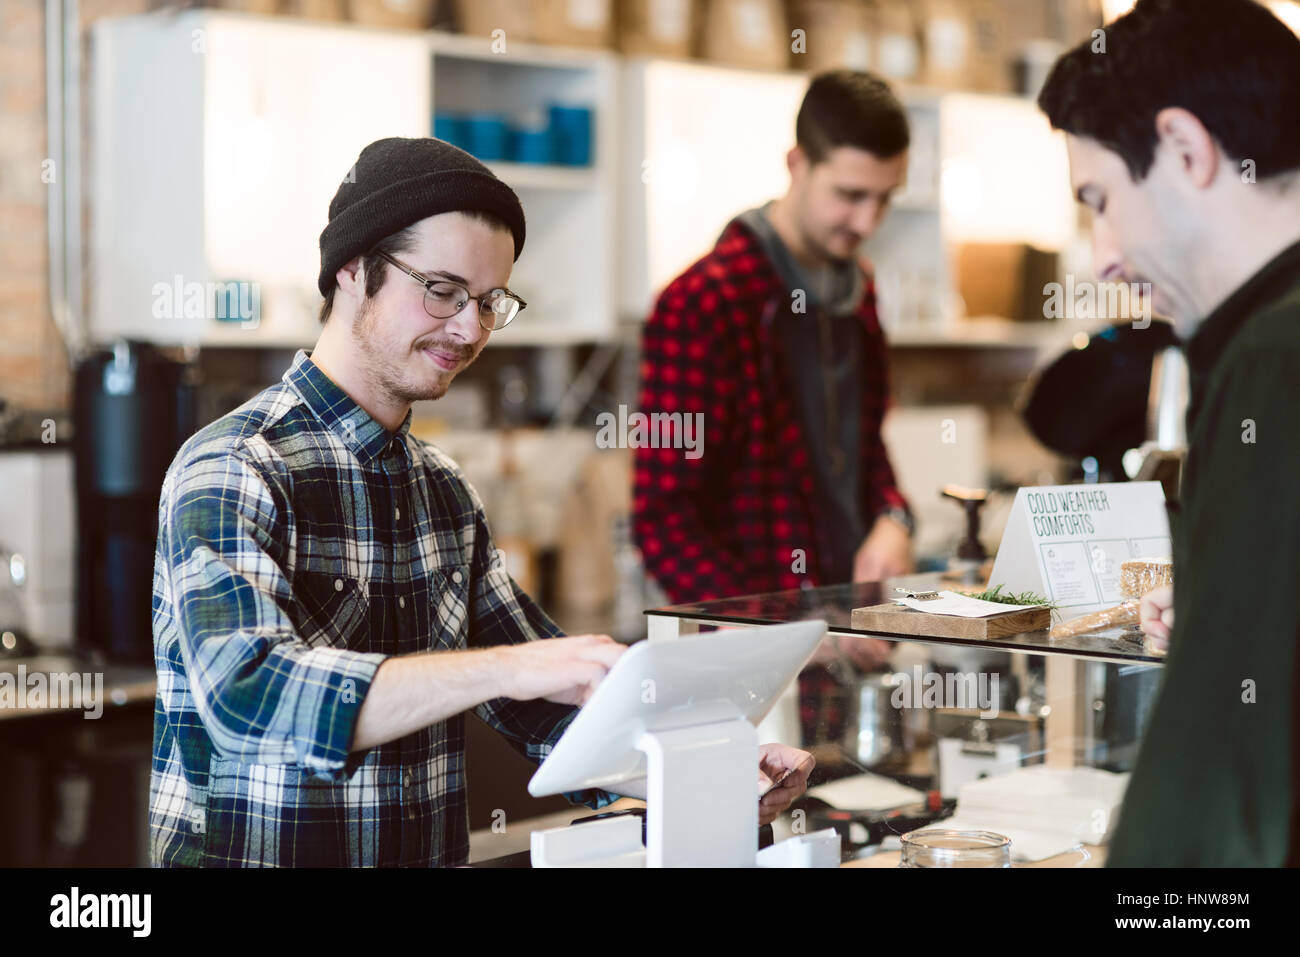 Cashier attending to customer in cafe - Stock Image